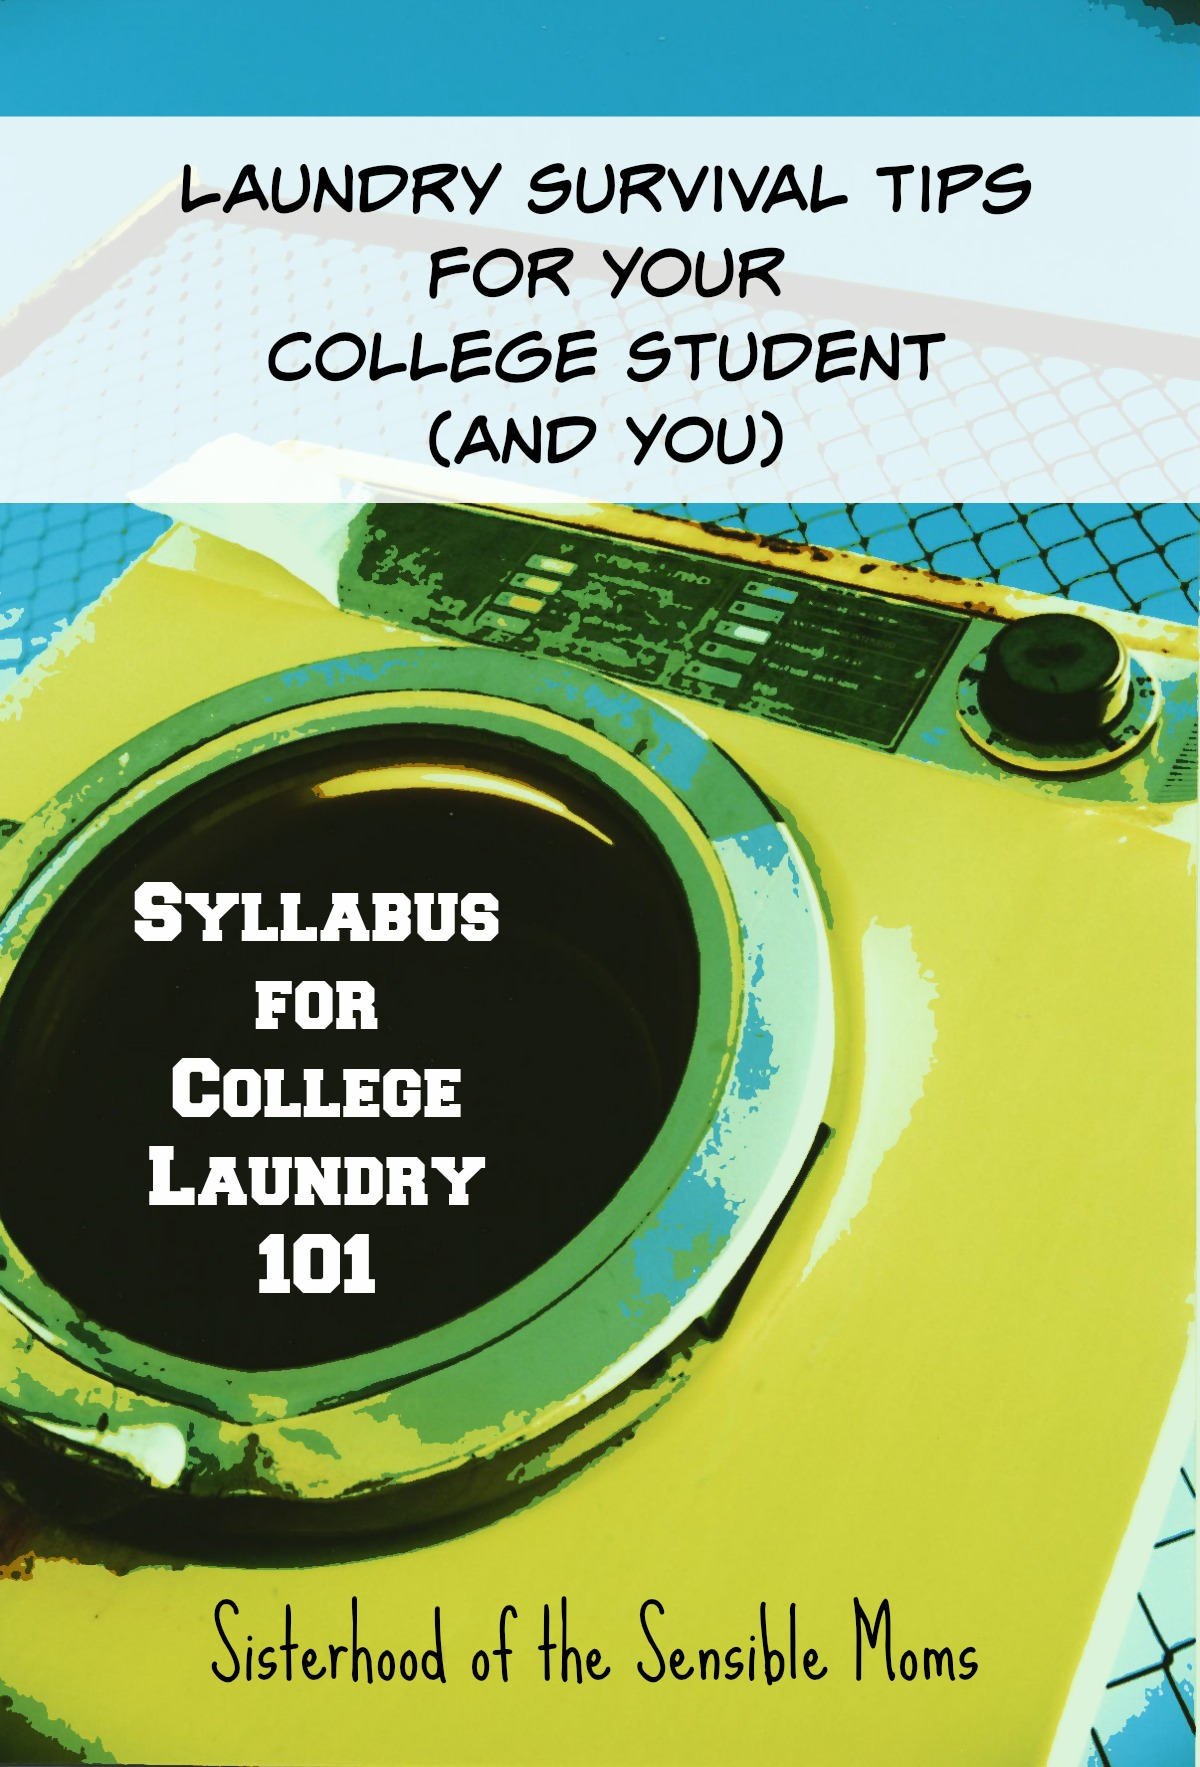 Syllabus for College Laundry 101 |It's never too late (or too early) to teach your child life skills! Comprehensive laundry survival tips, advice and how-to for your college student and you! The bed-making and wrinkle busting tips are amazing! | Parenting Advice | Sisterhood of the Sensible Moms